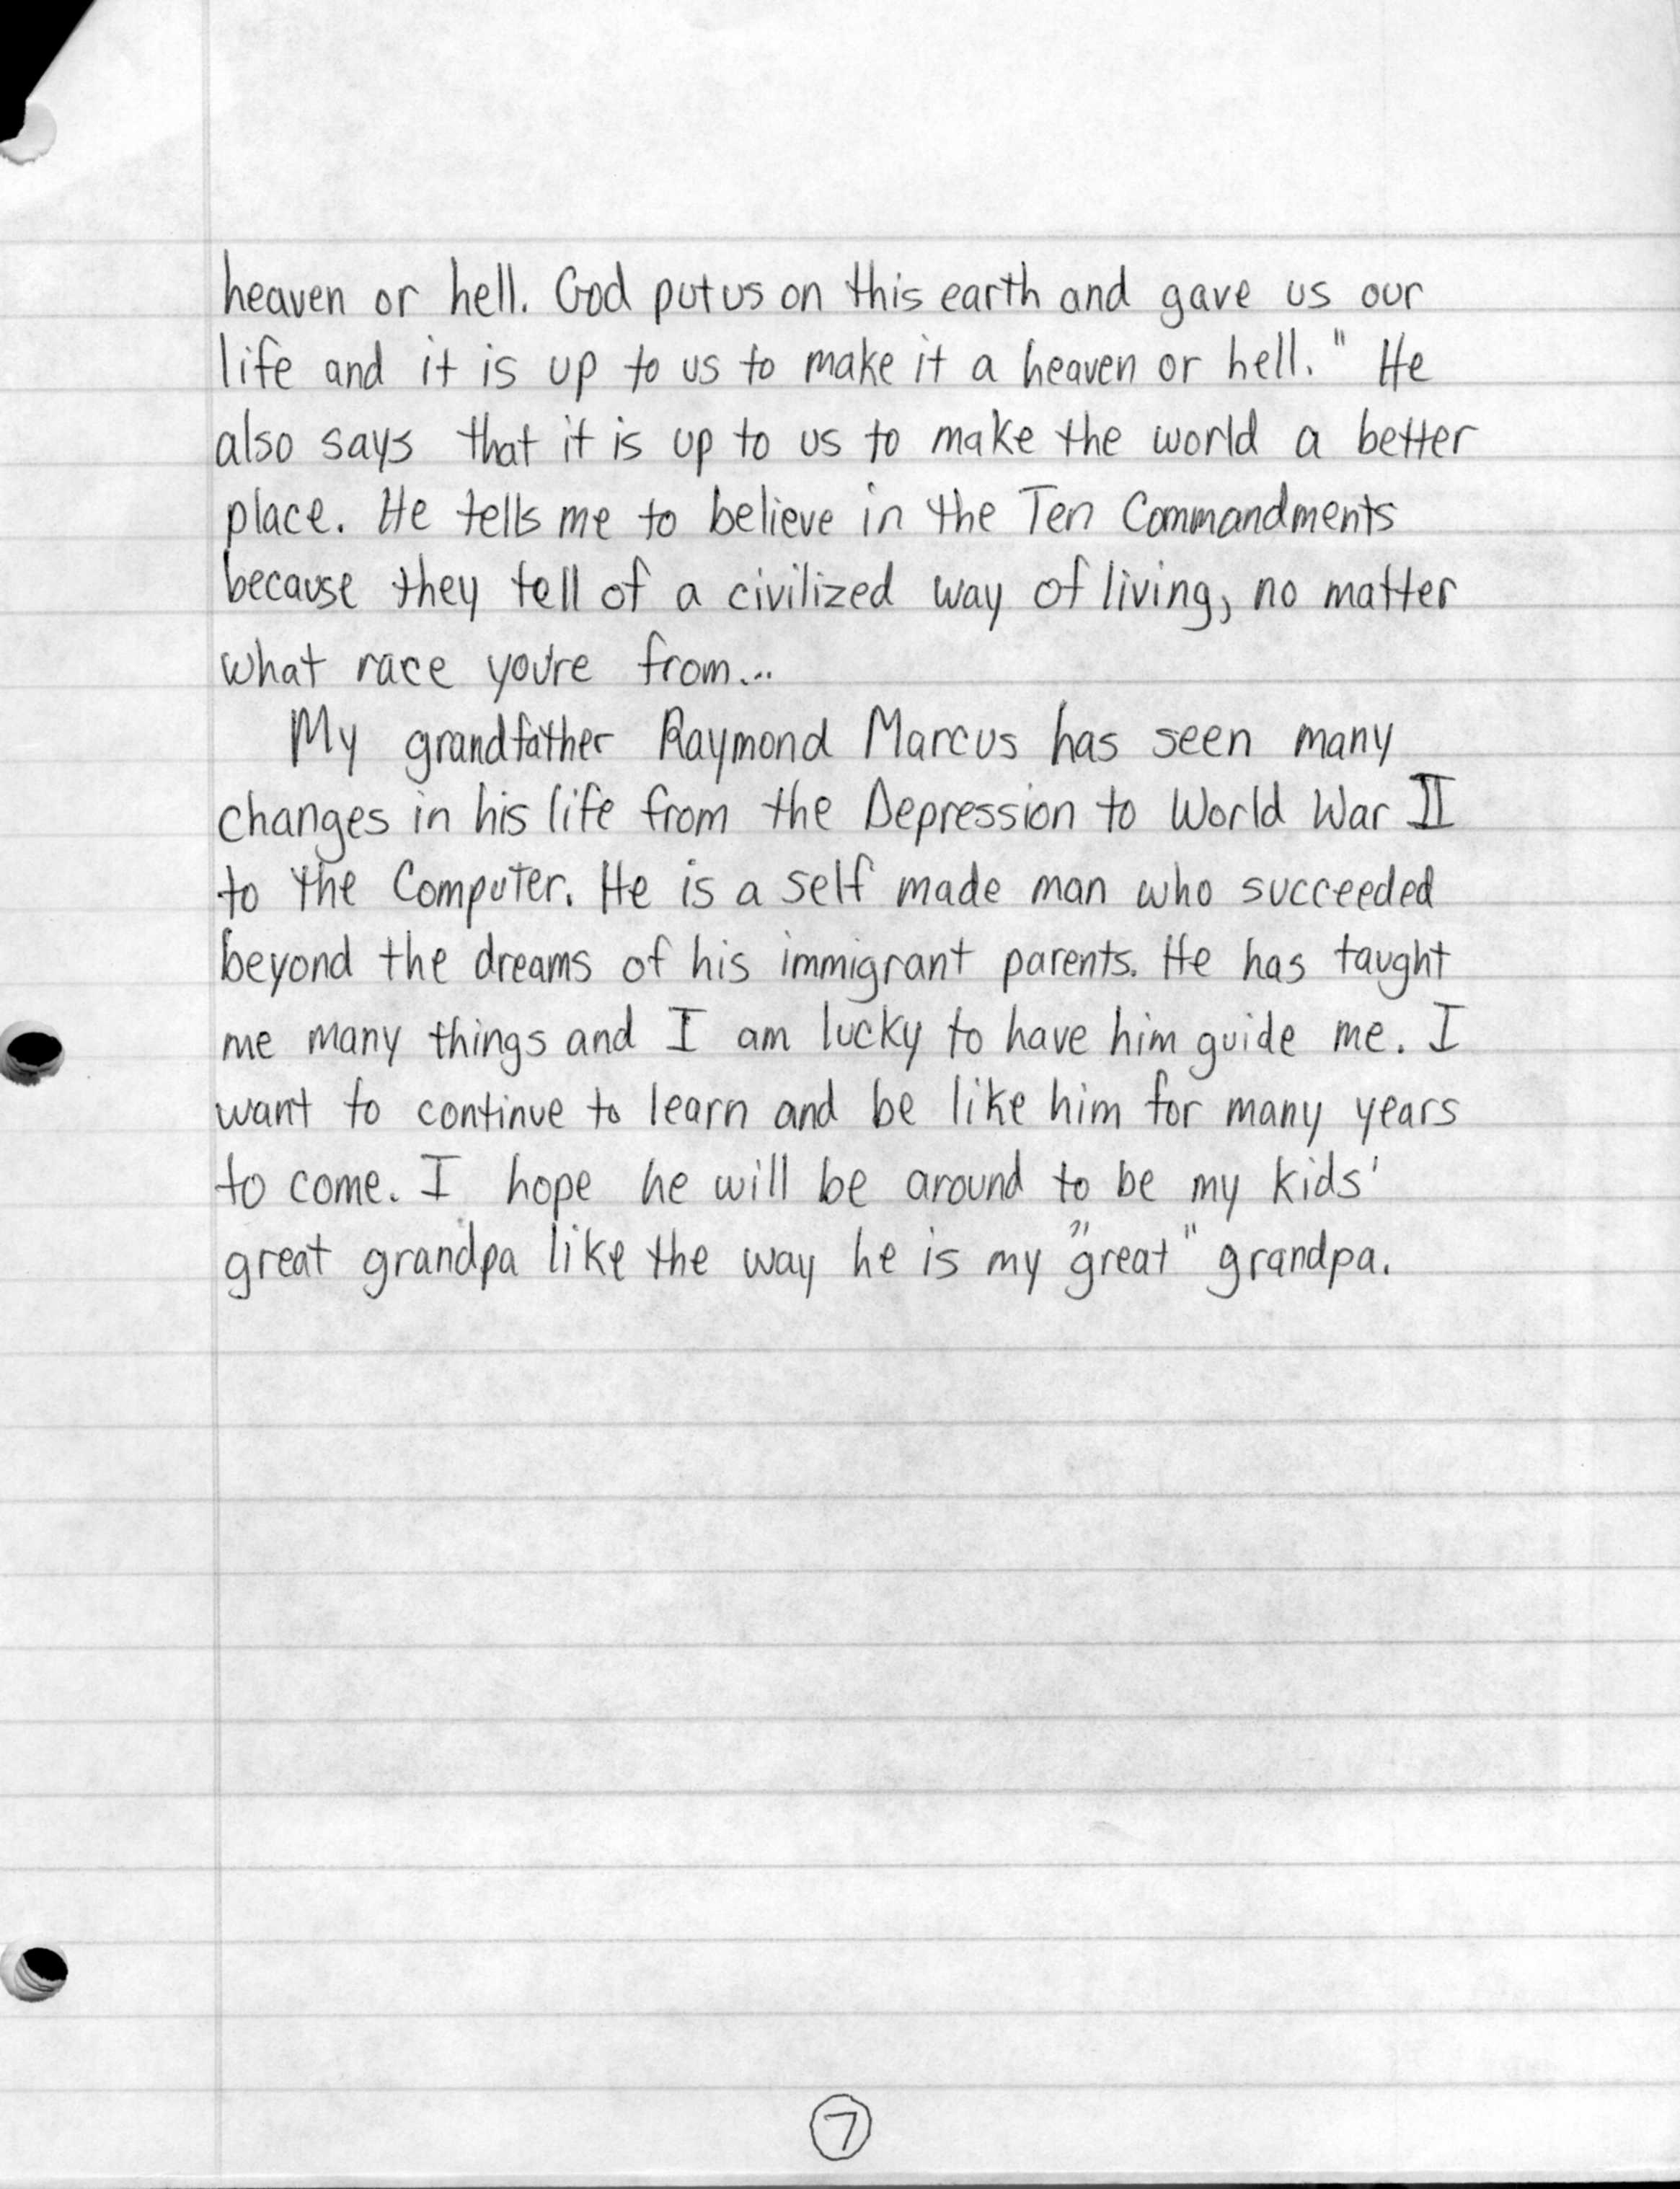 personal narrative essays on death Narrative essay on death by lauren bradshaw september 16, 2014 sample essays  tags: essay on death, narrative essays  book report help book review help cheap essays cheap research papers cheap term papers personal statement help case study help case study writers attention.